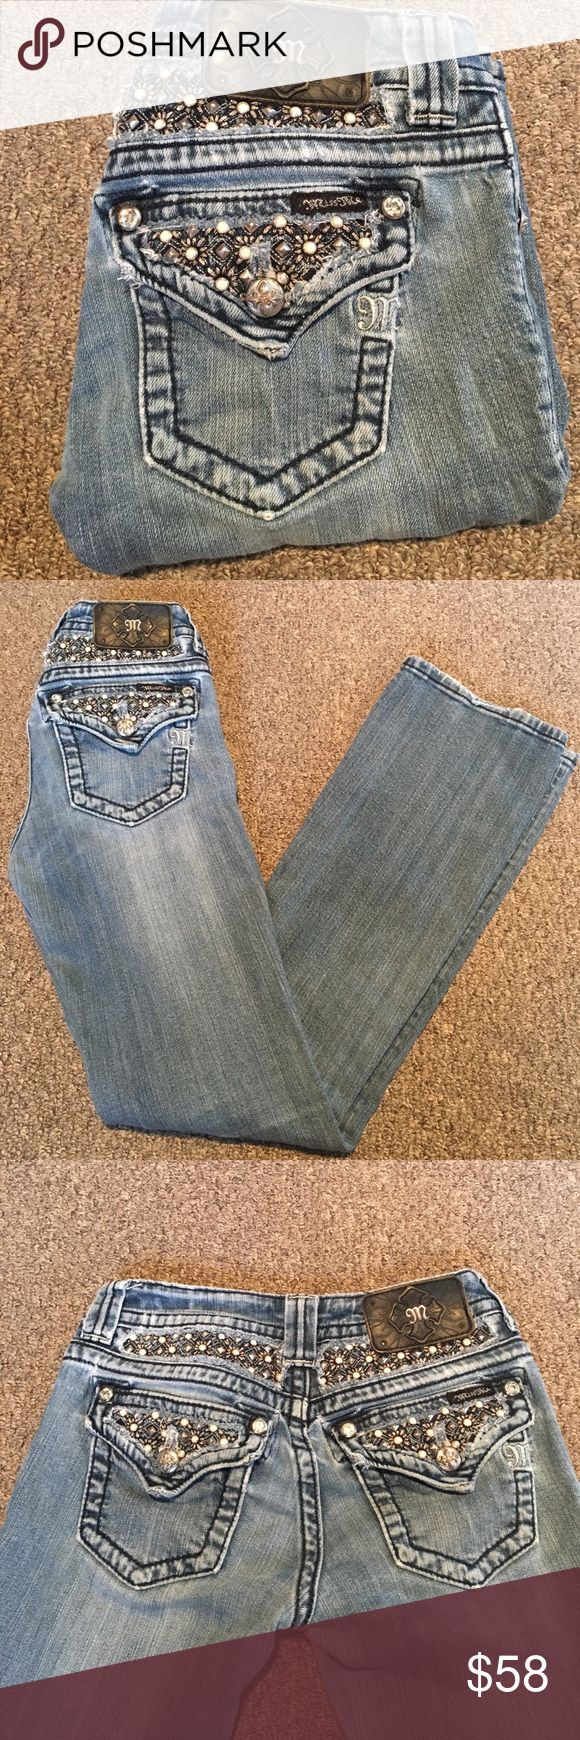 DAISY STUDDED MISS MES Gently used condition. No major flaws with lots of life left. Unique daisy pattern with white stones & studs. Miss Me Jeans Boot Cut